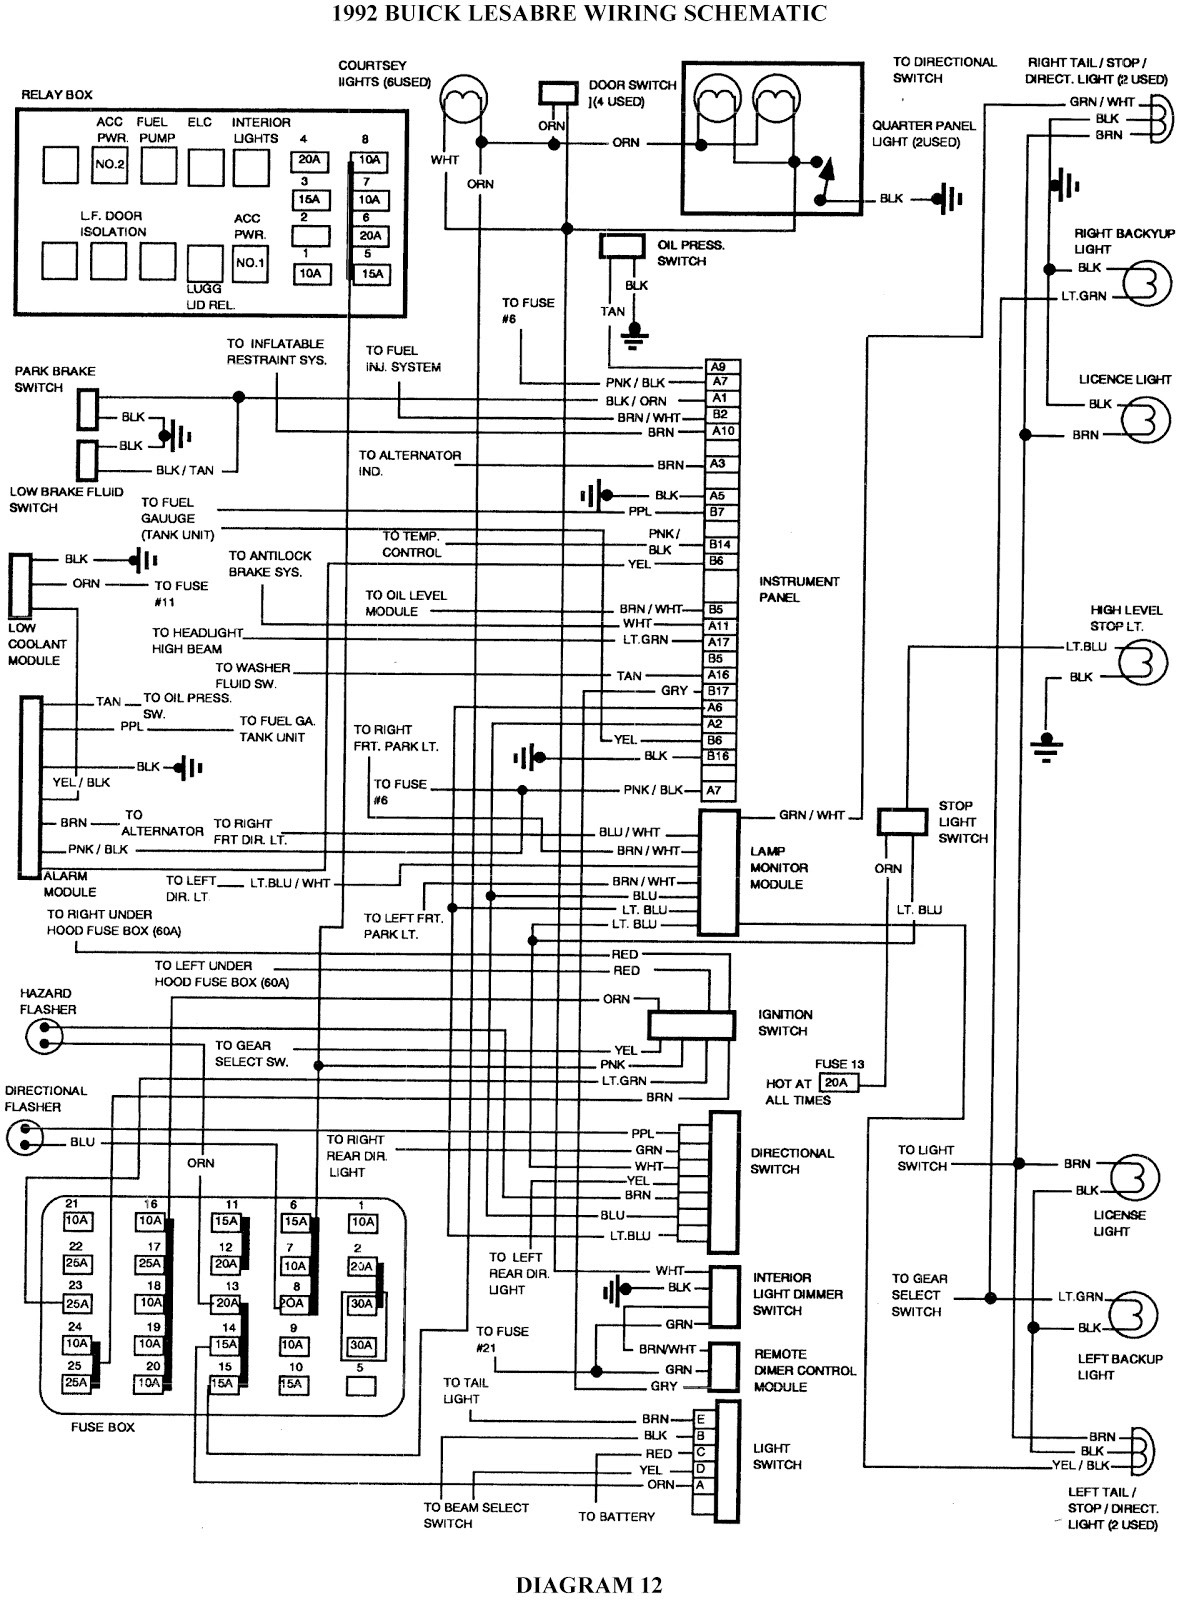 2000 chevy silverado door parts diagram wiring schematic 1992 buick lesabre schematic wiring diagrams schematic 2000 lexus rx300 engine parts diagram wiring schematic